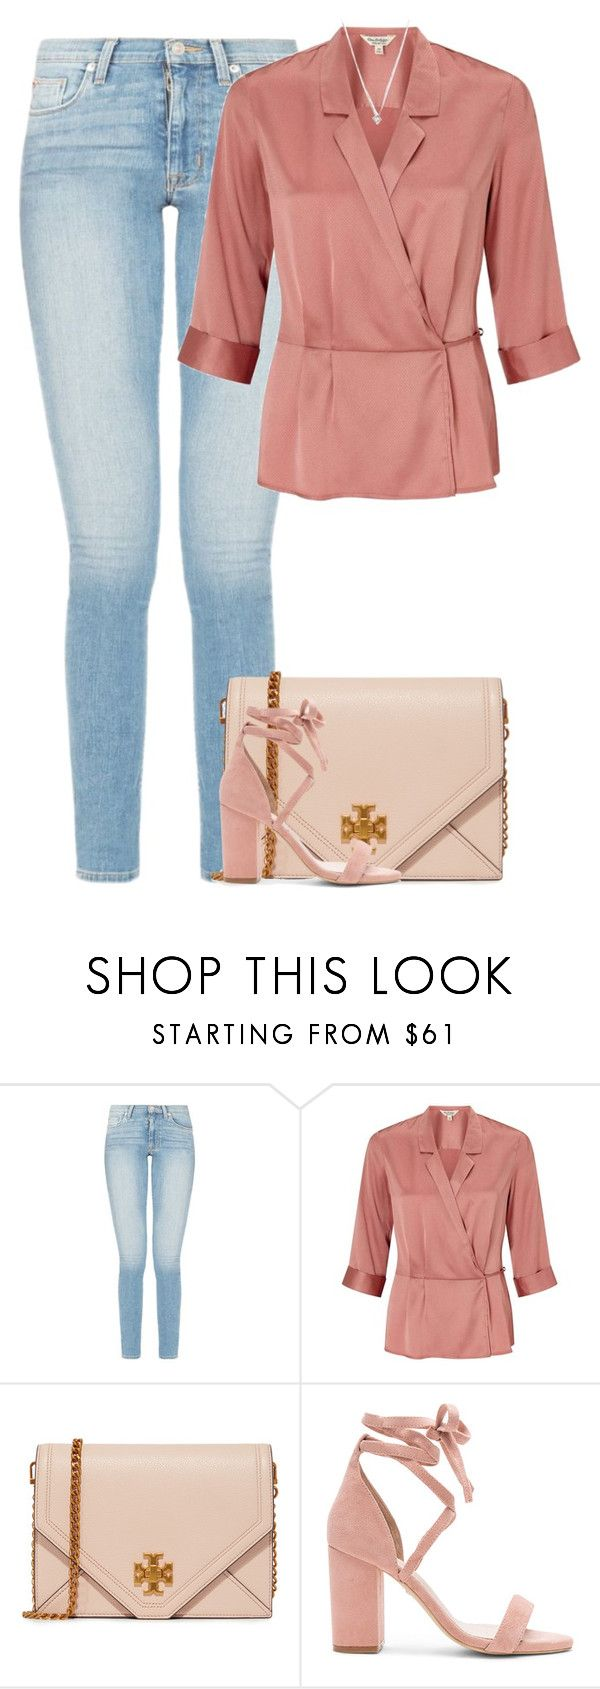 """""""Untitled #10412"""" by fanny483 ❤ liked on Polyvore featuring Miss Selfridge, Tory Burch and Raye"""